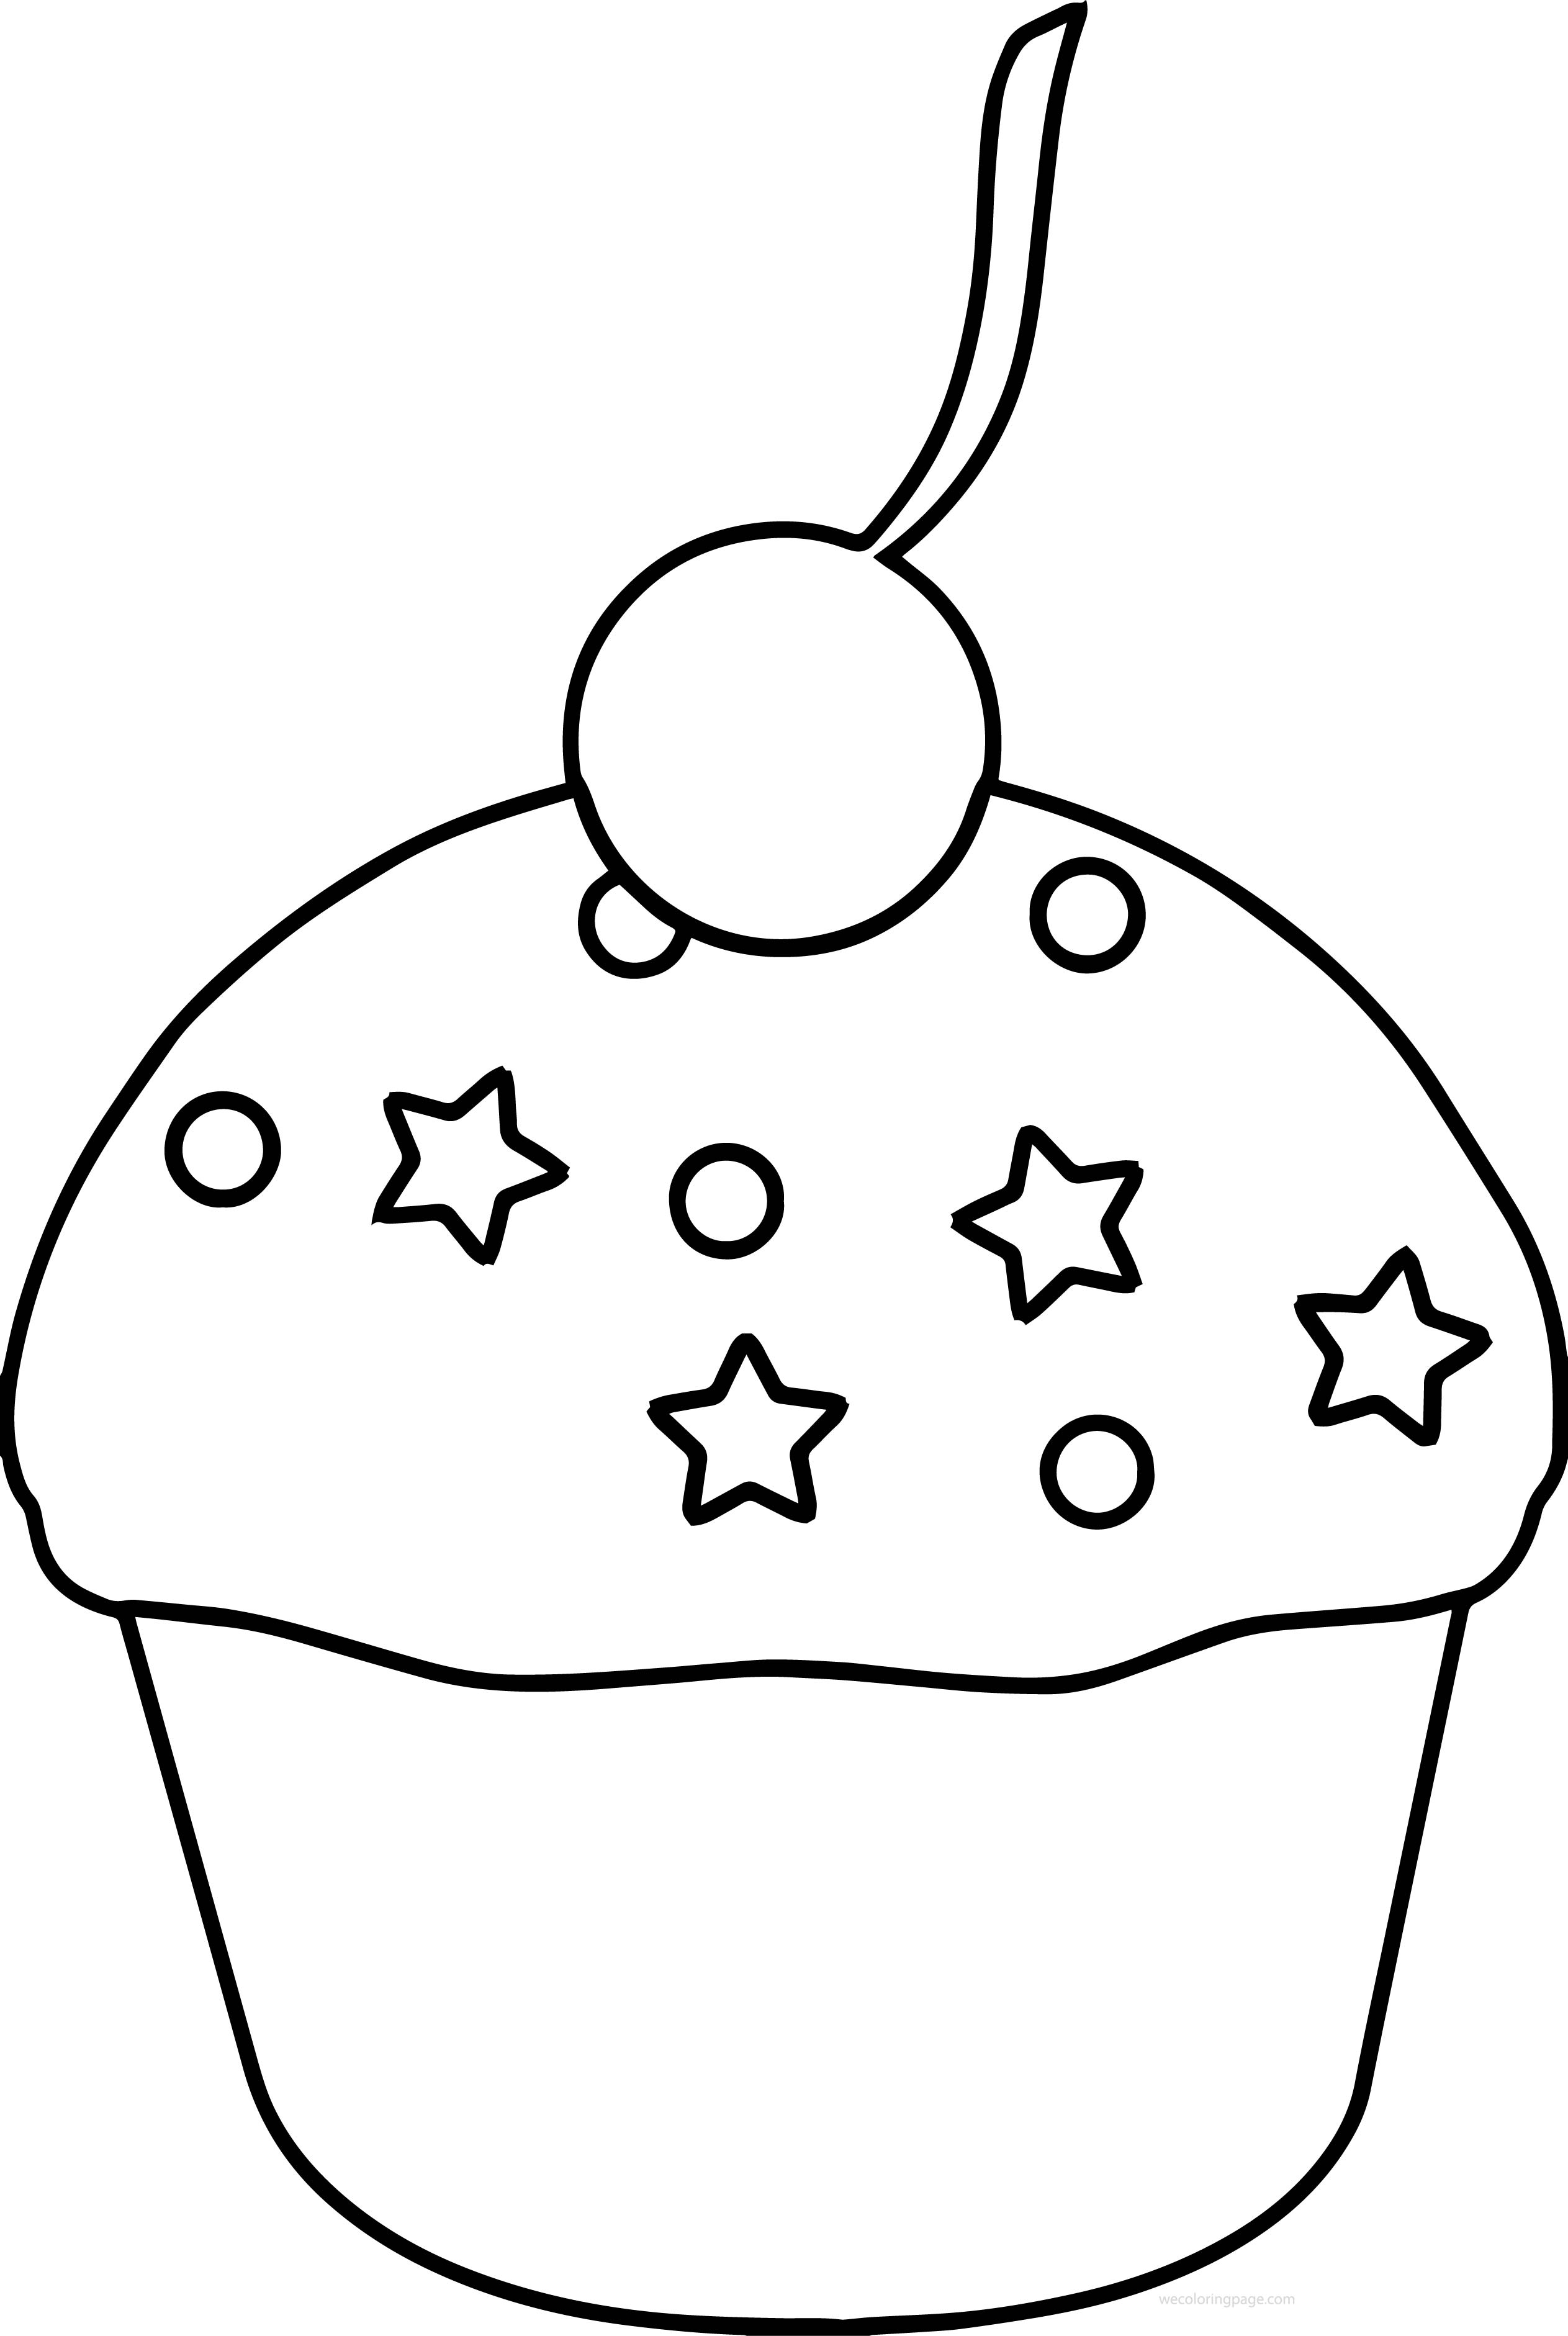 Sprinkles coloring pages ~ Cupcake Strawberry Sprinkles Cherry Coloring Page ...